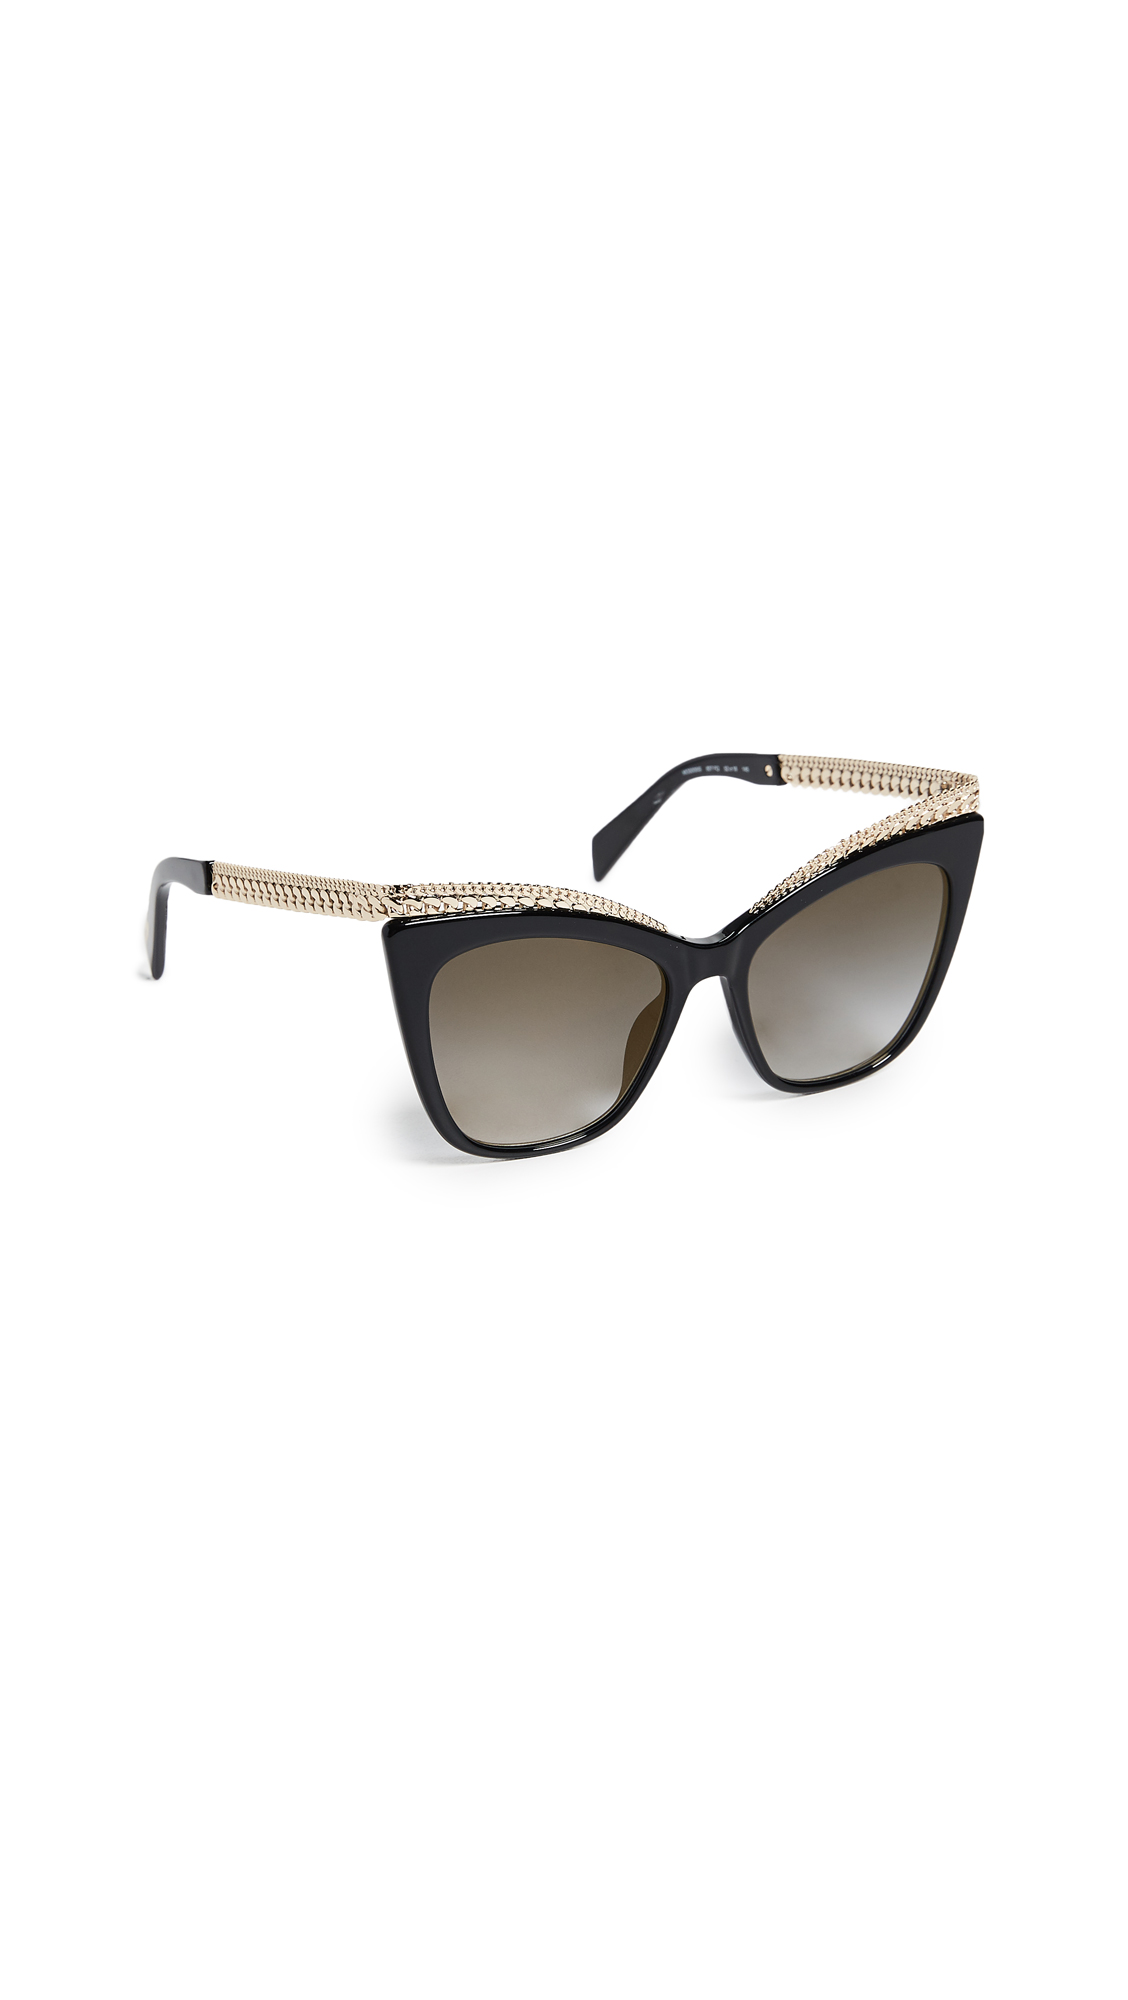 Moschino Chain Cat Eye Sunglasses - Black/Grey